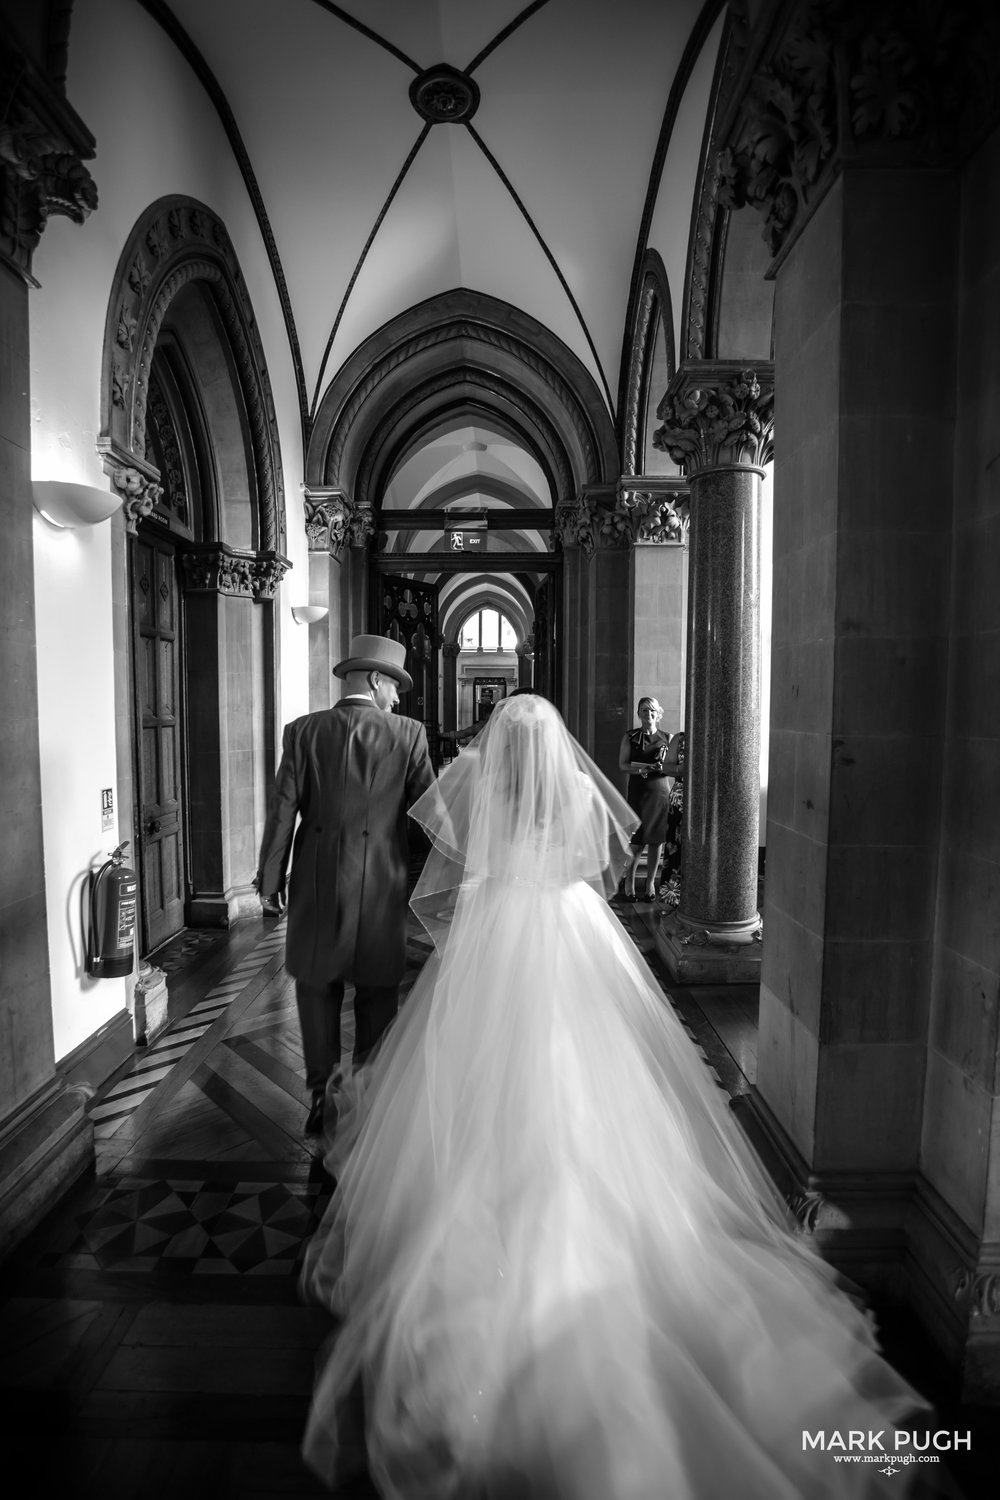 056 - Lauren and Tim - fineART wedding photography at Kelham Hall Newark UK by www.markpugh.com Mark Pugh of www.mpmedia.co.uk_.JPG